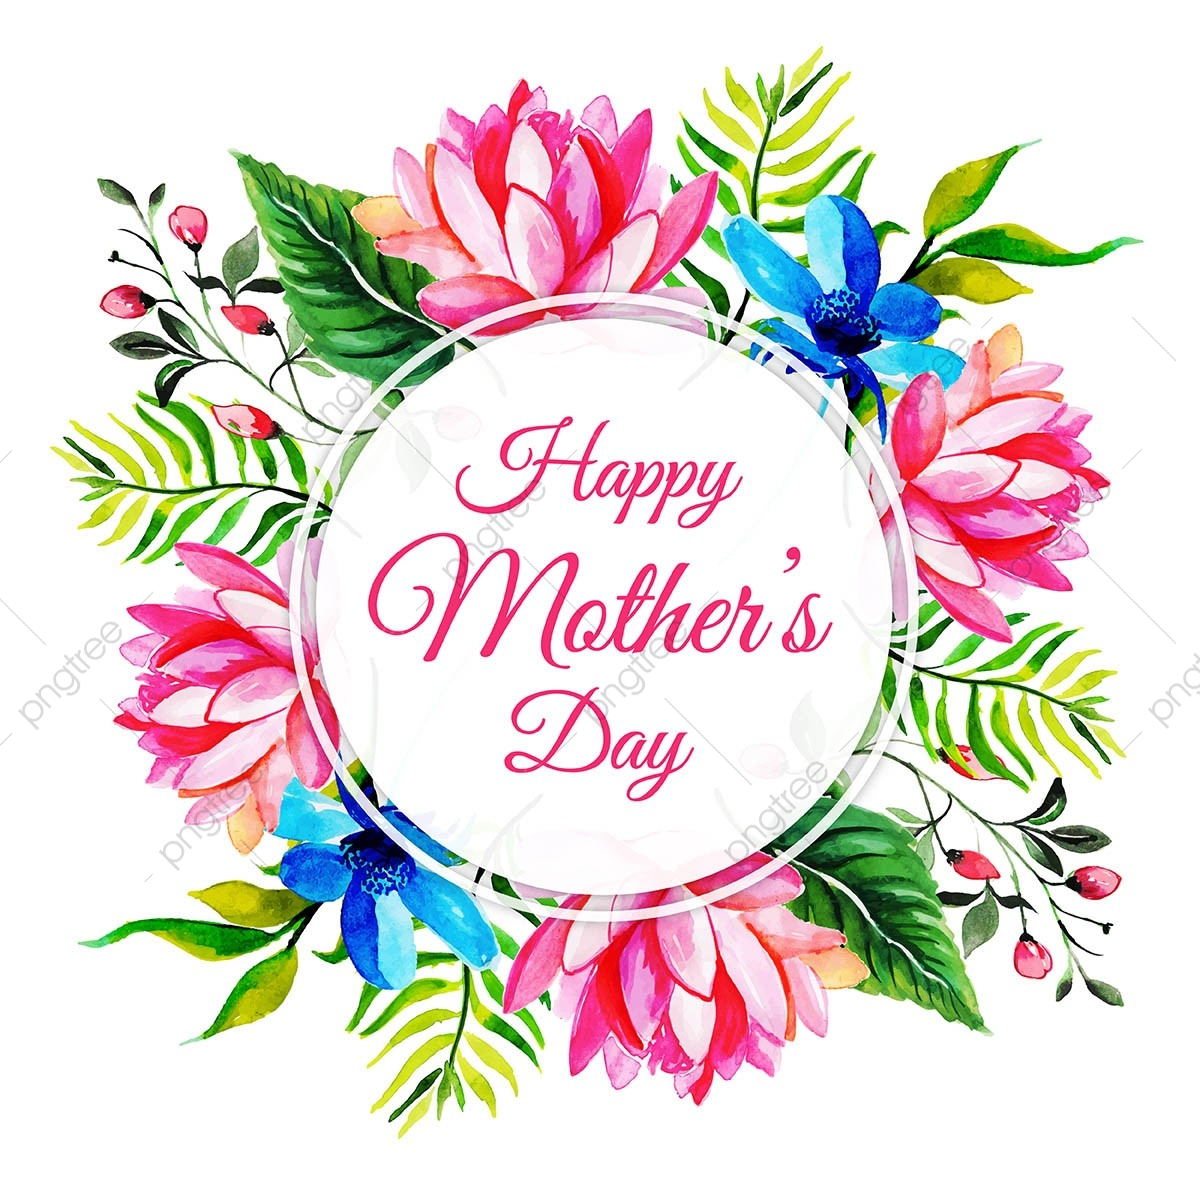 mothers day images hd free download